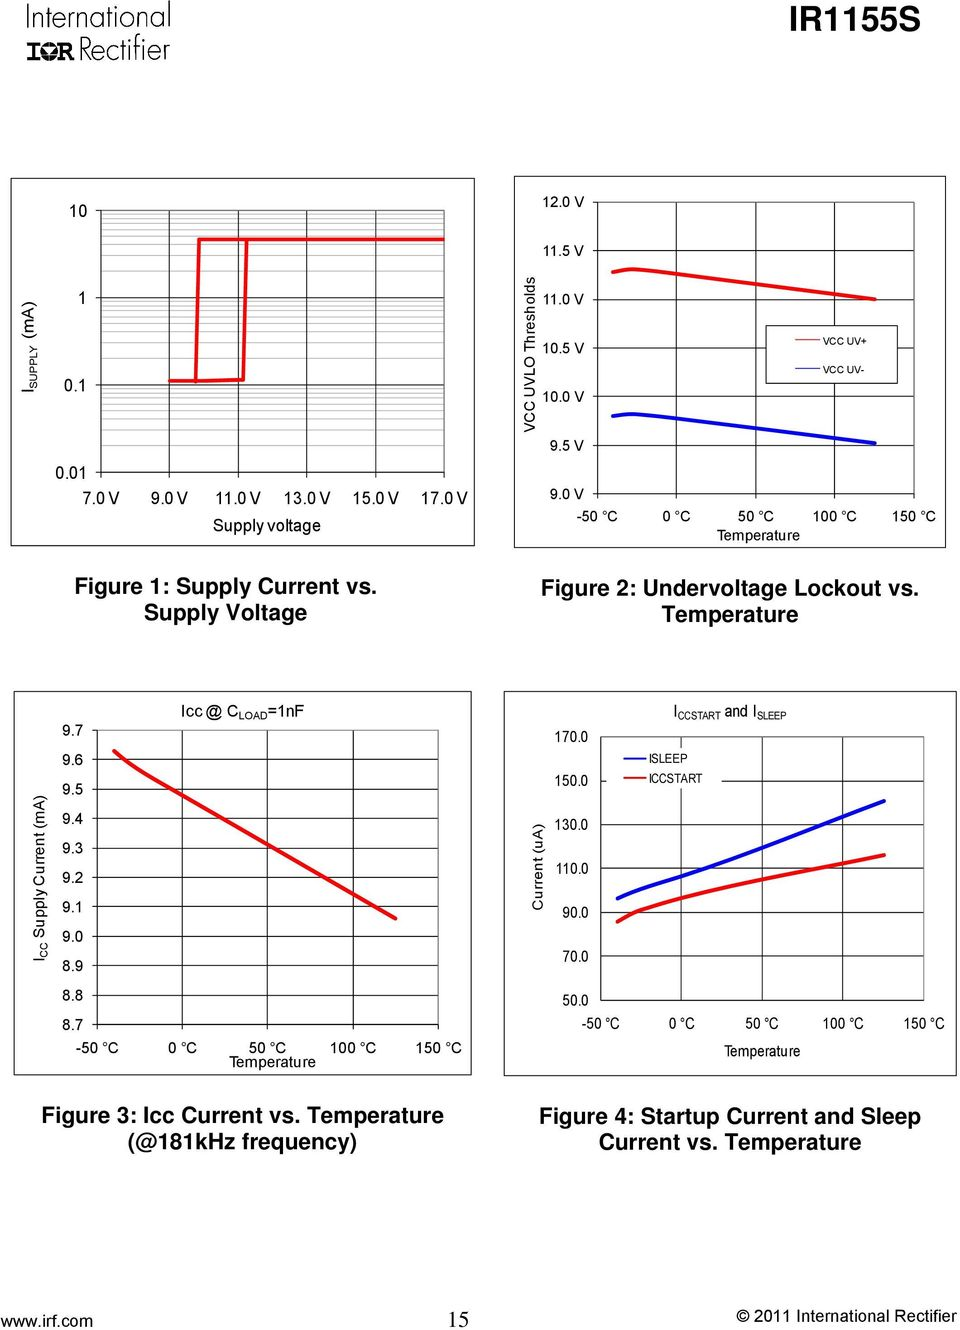 Ir1155s Programmable Frequency One Cycle Control Pfc Ic Pdf Ir2110 High Speed Power Mosfet Lead Assignments And Datasheet Temperature I Cc Supply Current Ma Icc C Load 1nf 97 96